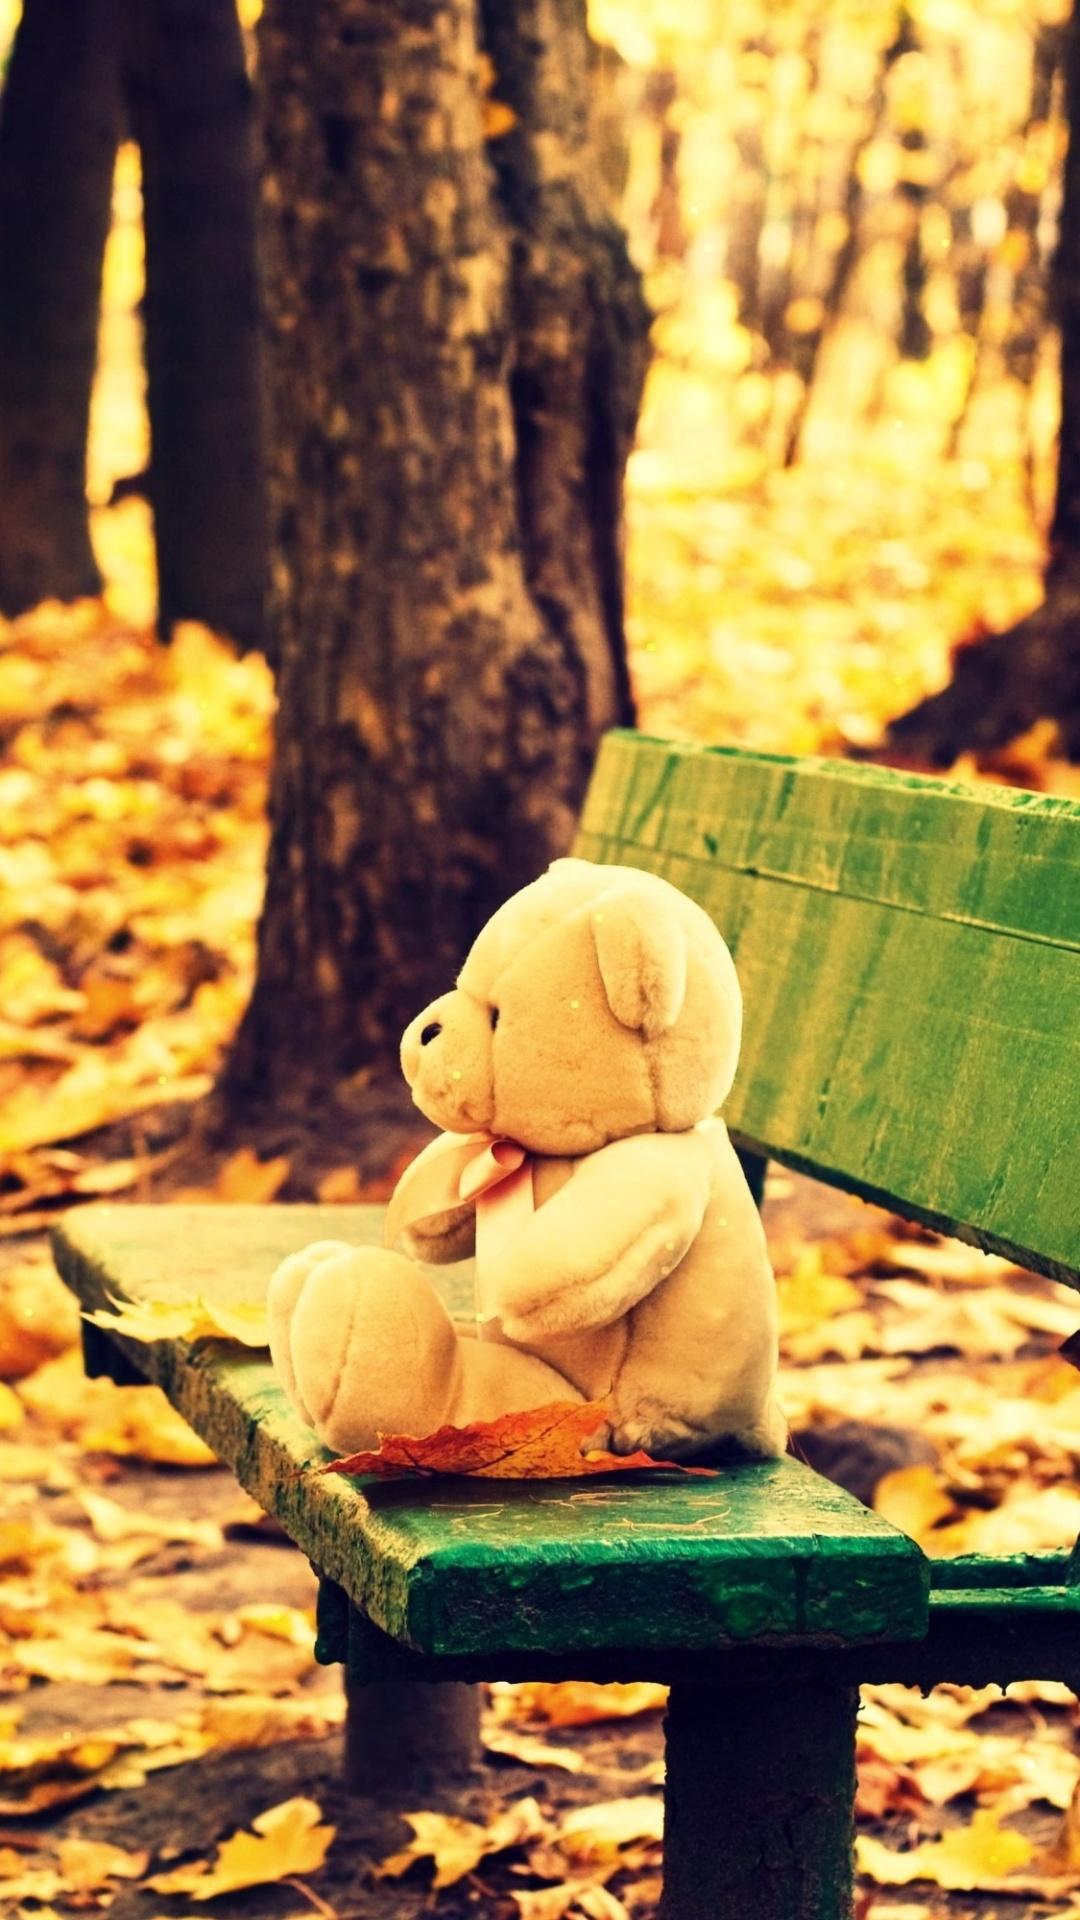 sad alone teddy bear wallpapers